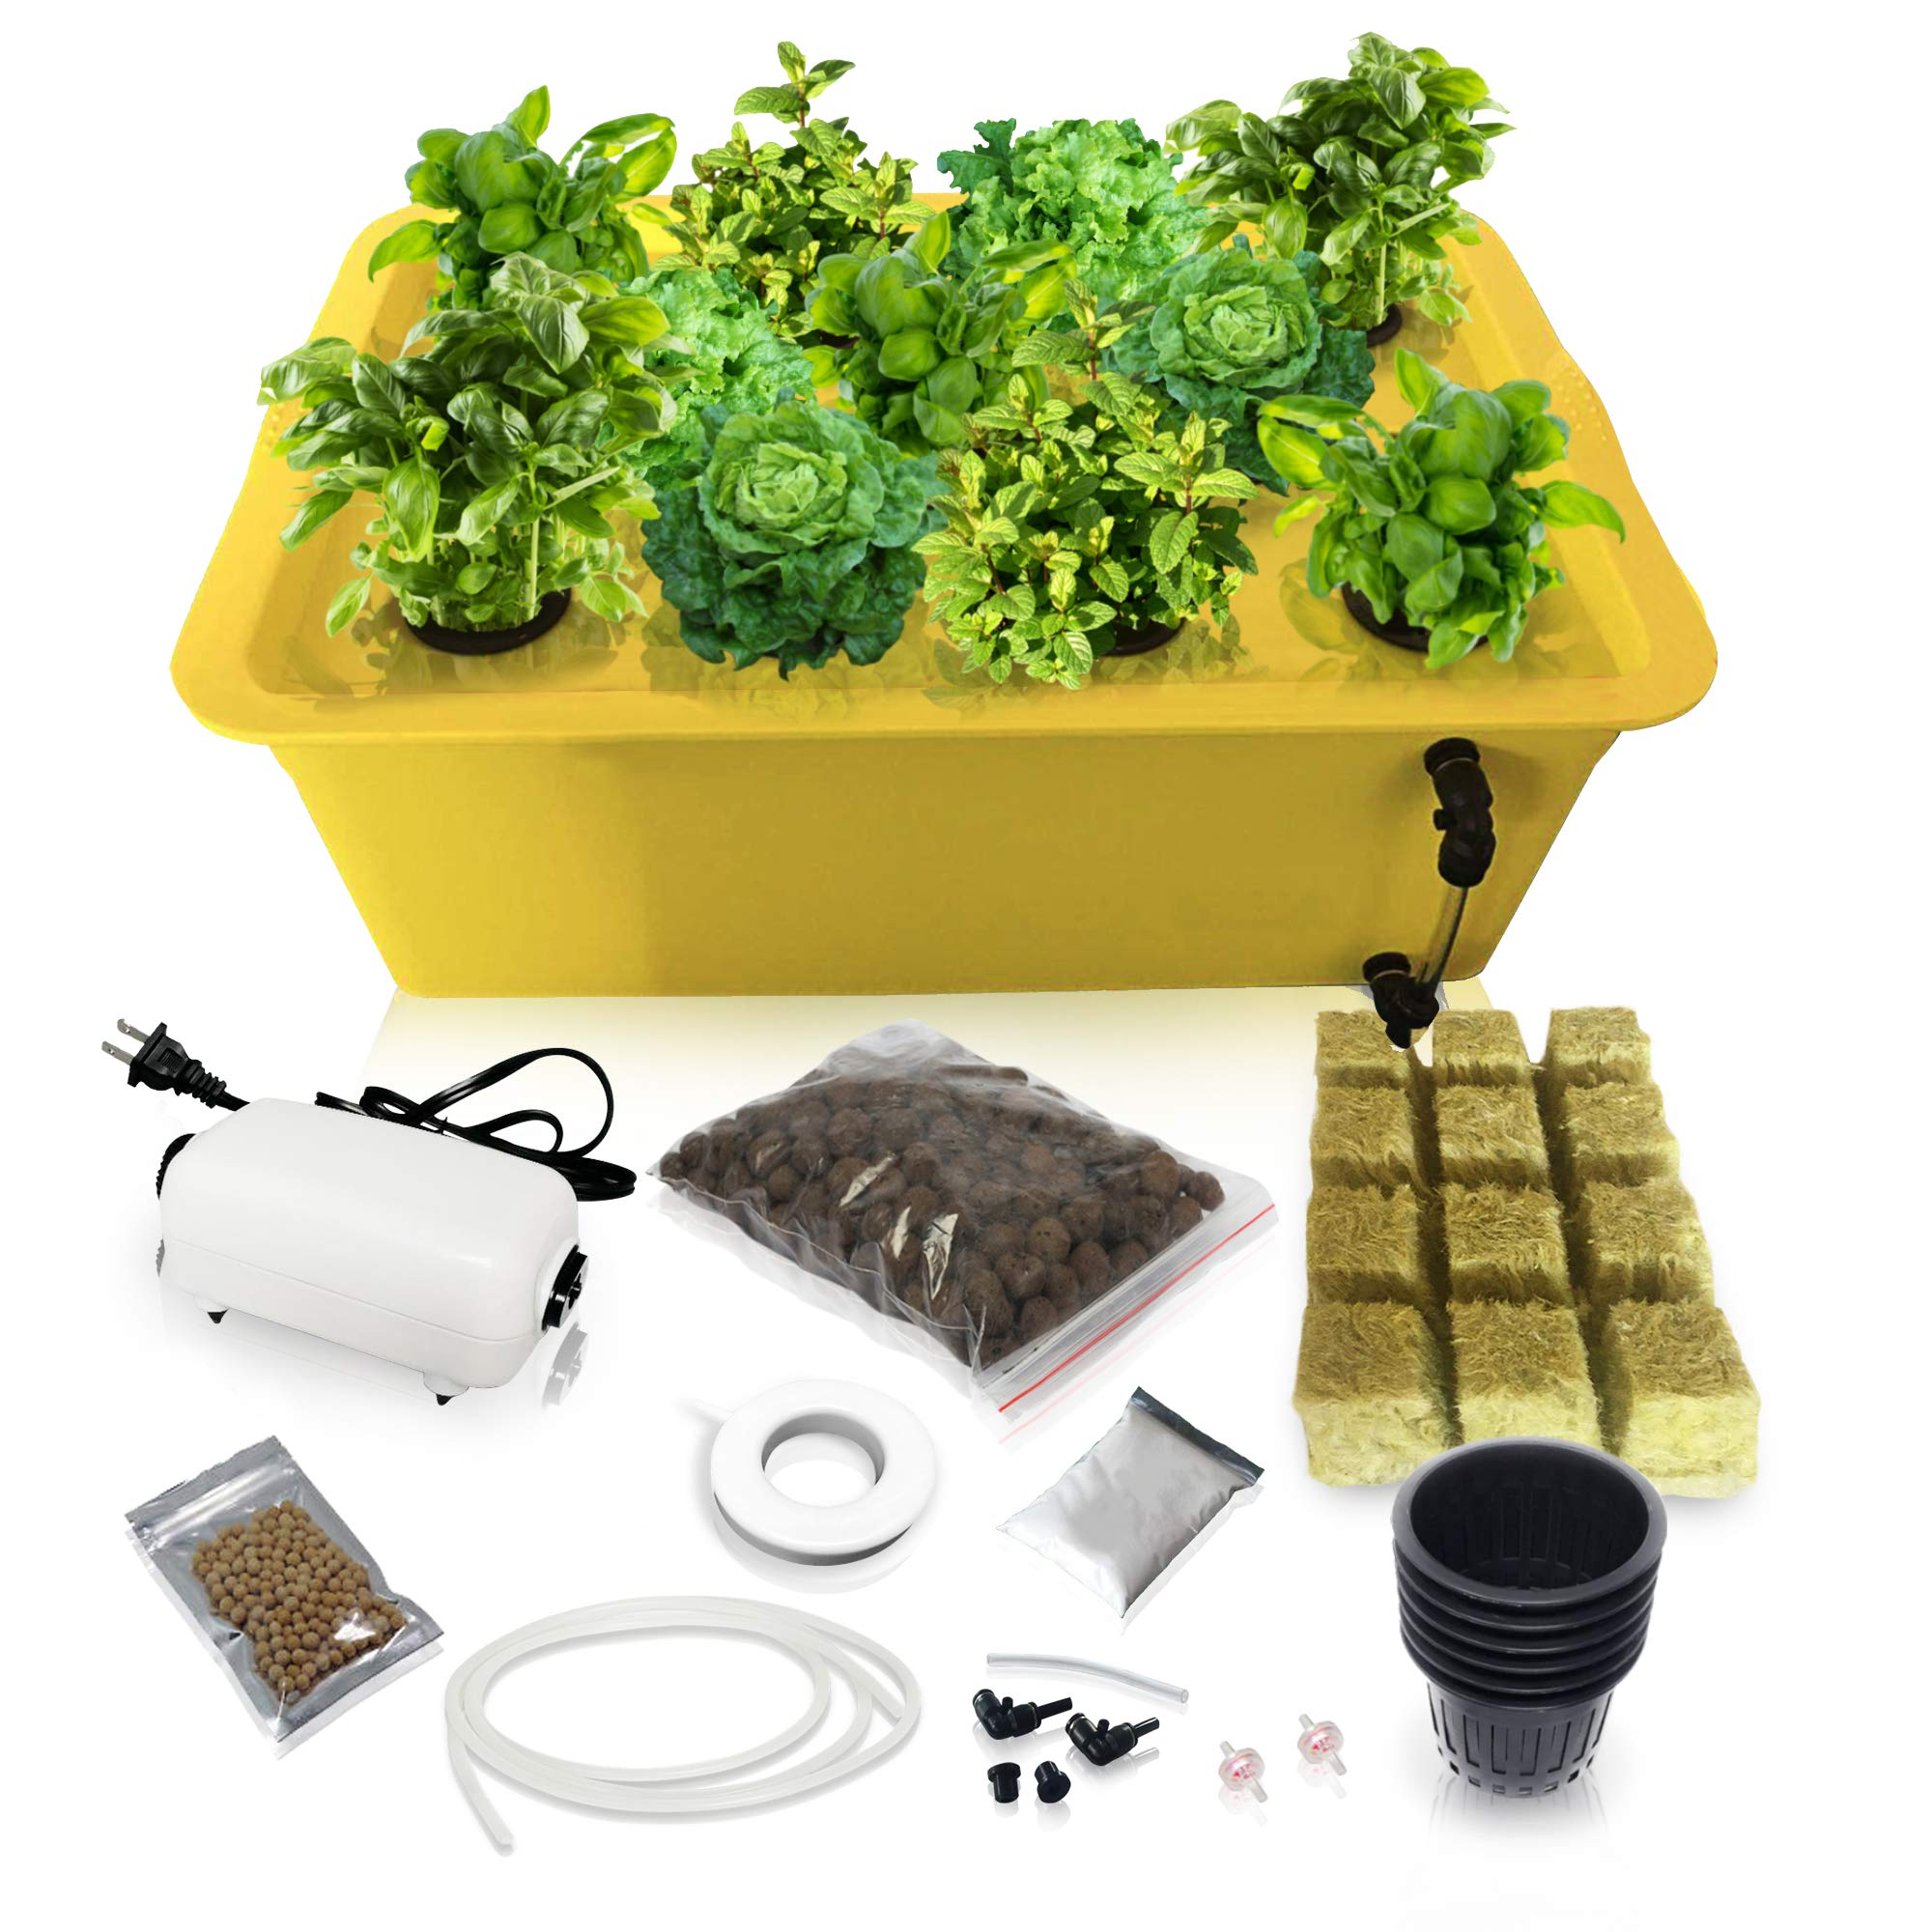 Herb Garden Starter Kit Indoor - Hydroponics Growing System with Nutrients and Herbs Seeds - Heirloom Non-GMO Cilantro, Parsley, Basil, Thyme, Mint - Complete All in One Ready to Grow (Herb Kit) by SavvyGrow (Image #1)